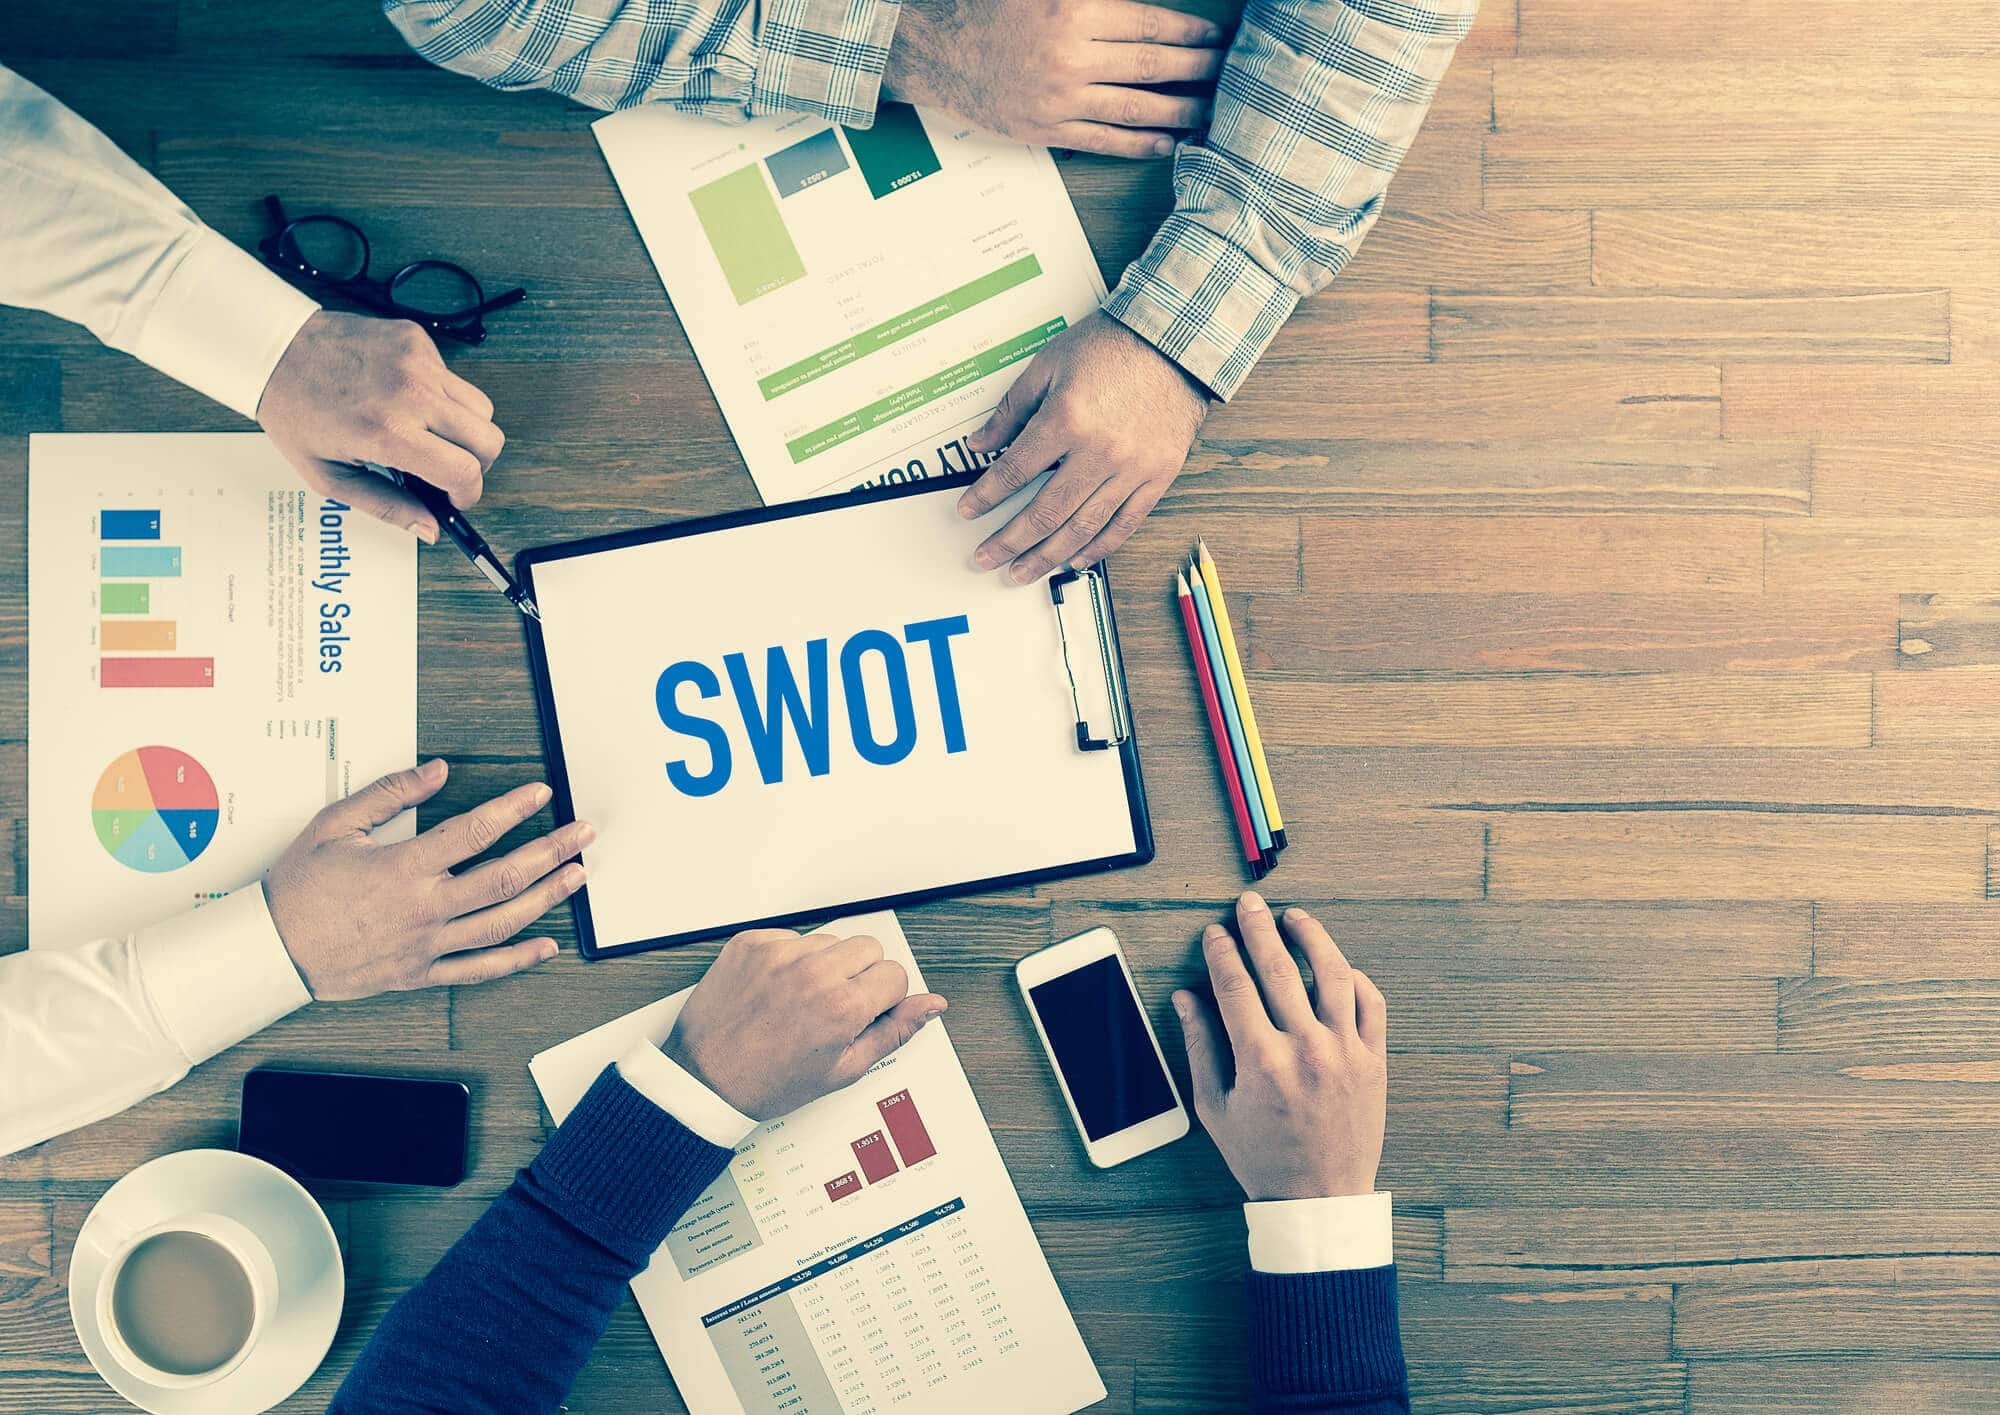 SWOT Analysis Of A Business: How To Do A SWOT Analysis (With Free Template)